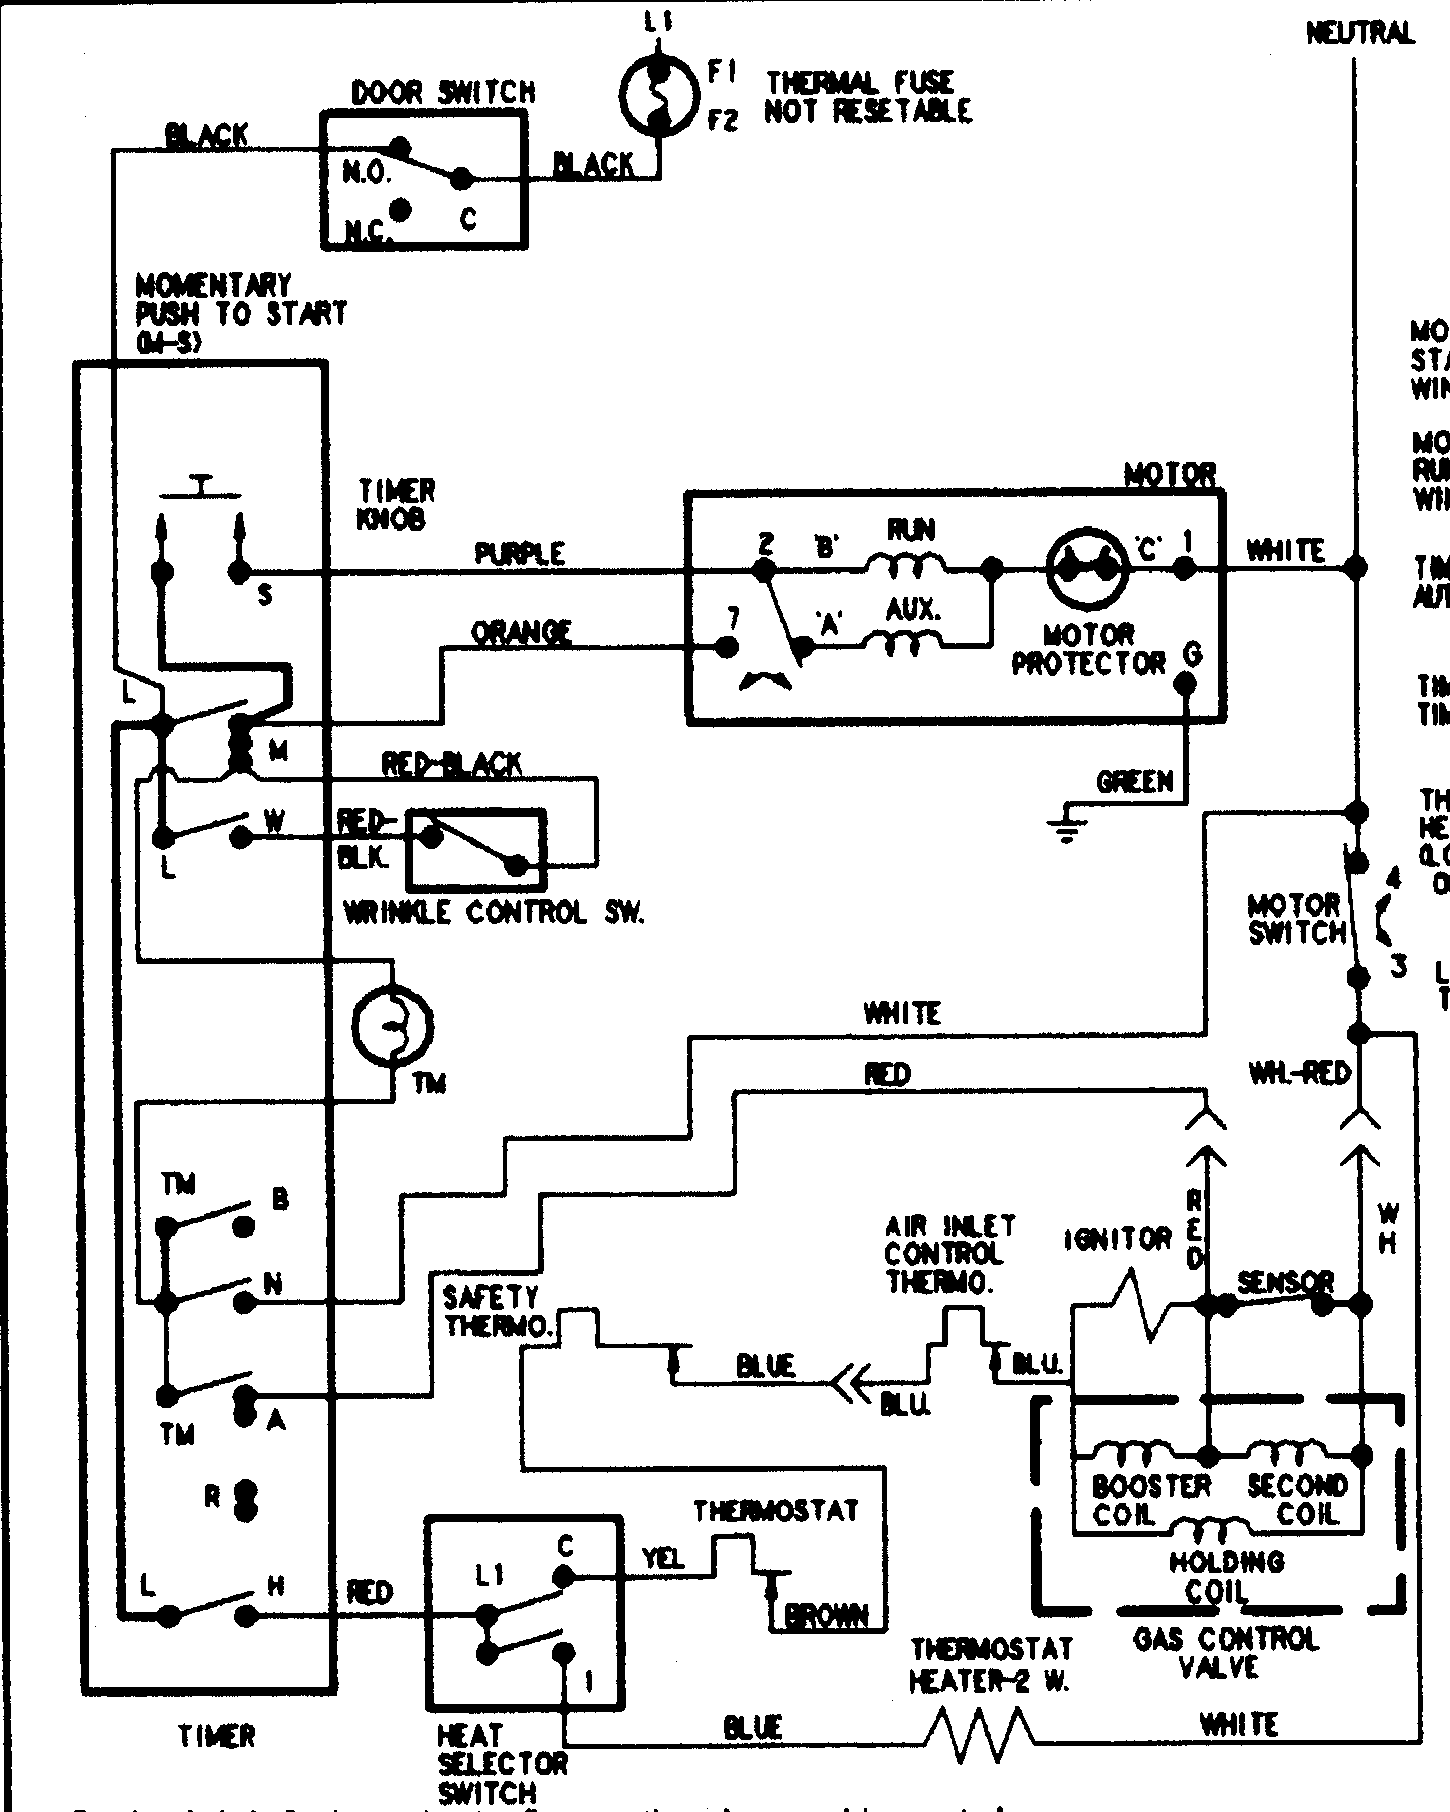 Square D 8910 Dpa 43 Wiring Diagram : 35 Wiring Diagram